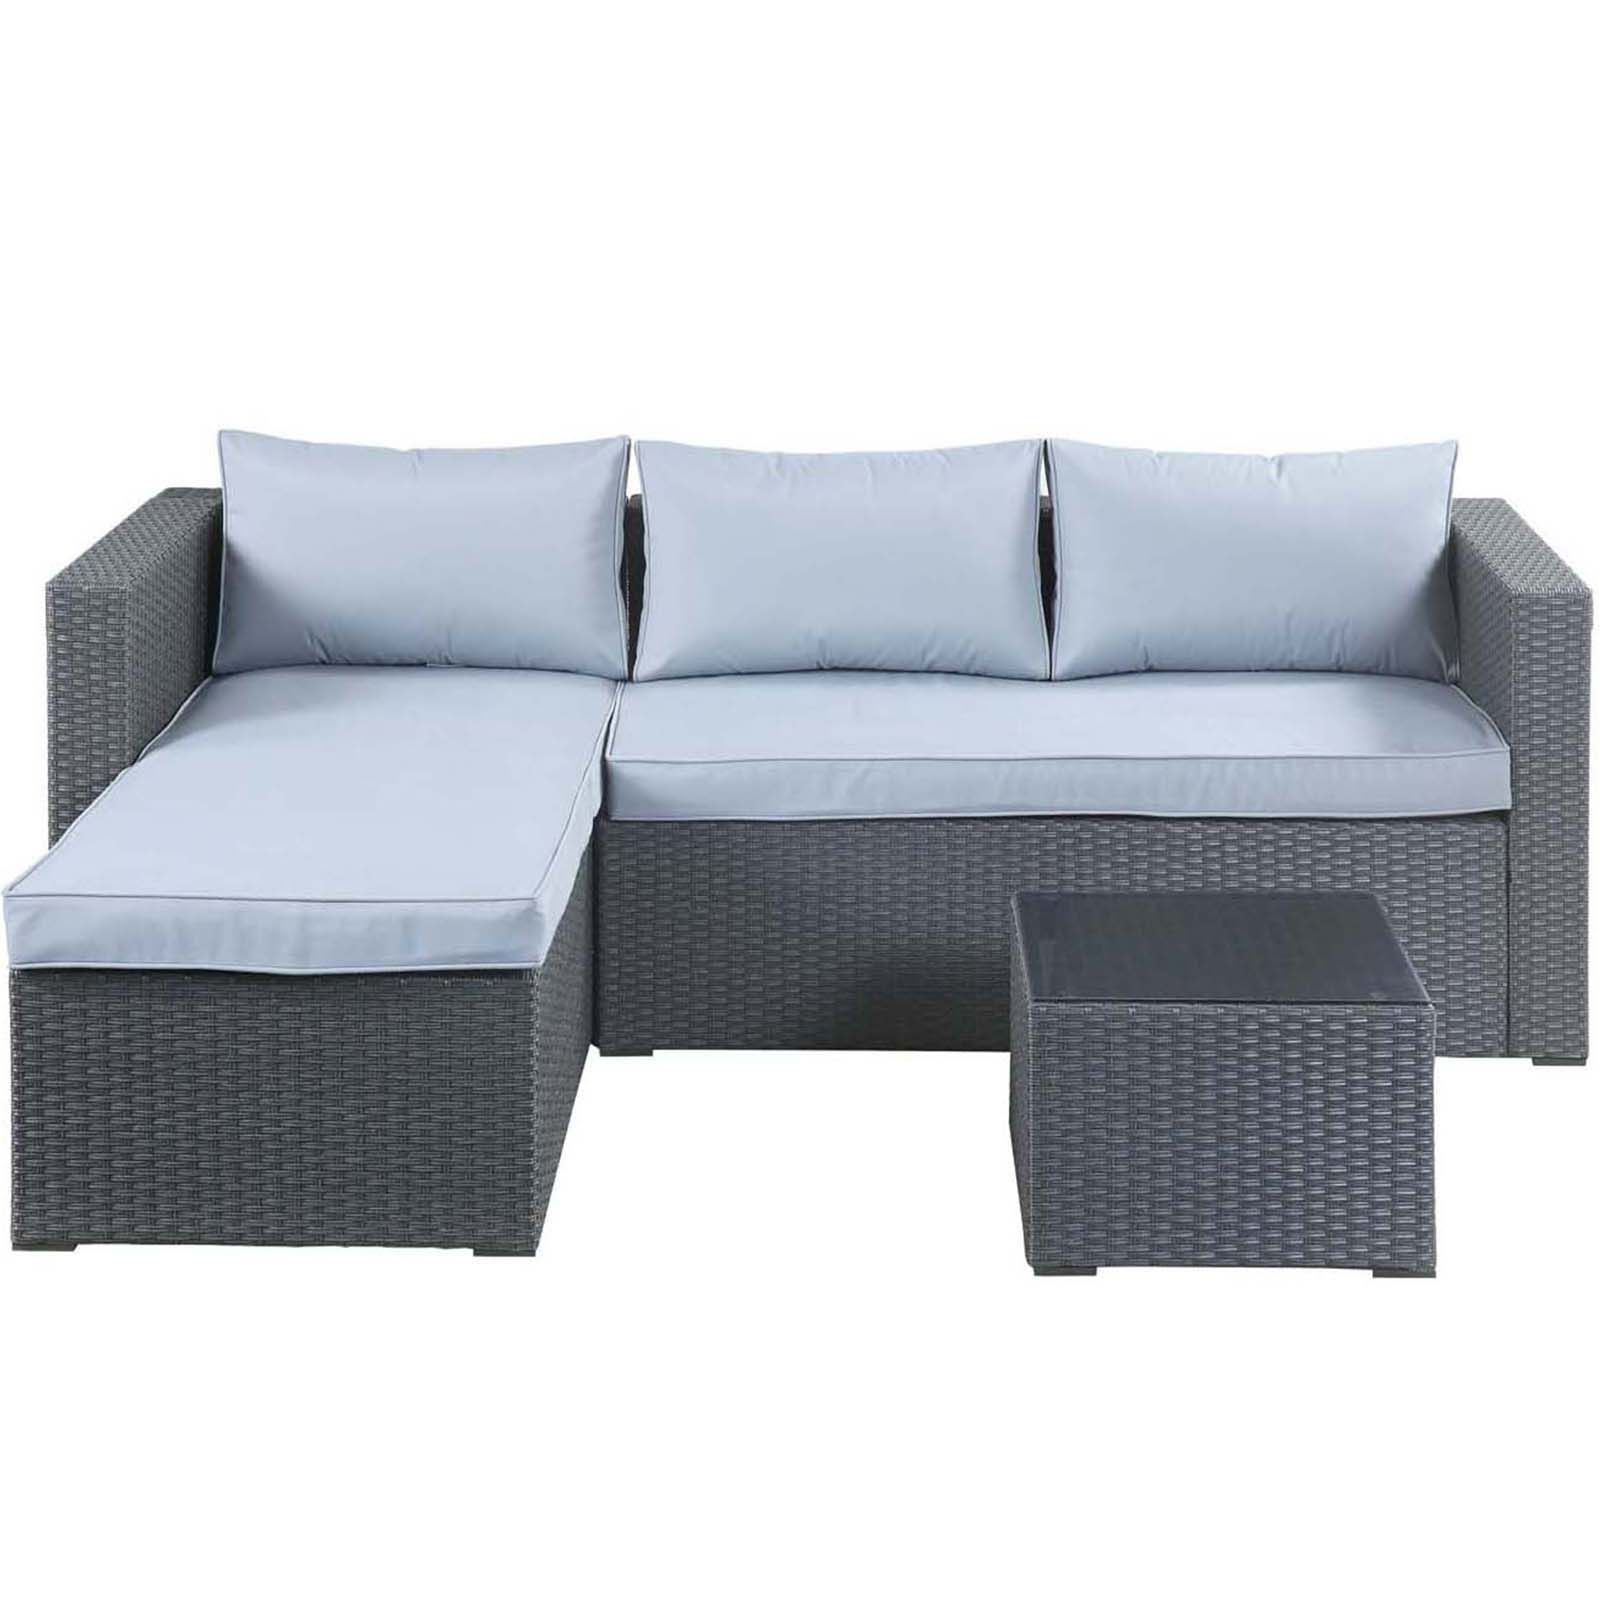 Sofa Rattan Find Alexandria Rattan Effect 3 Seater Corner Garden Sofa Set At